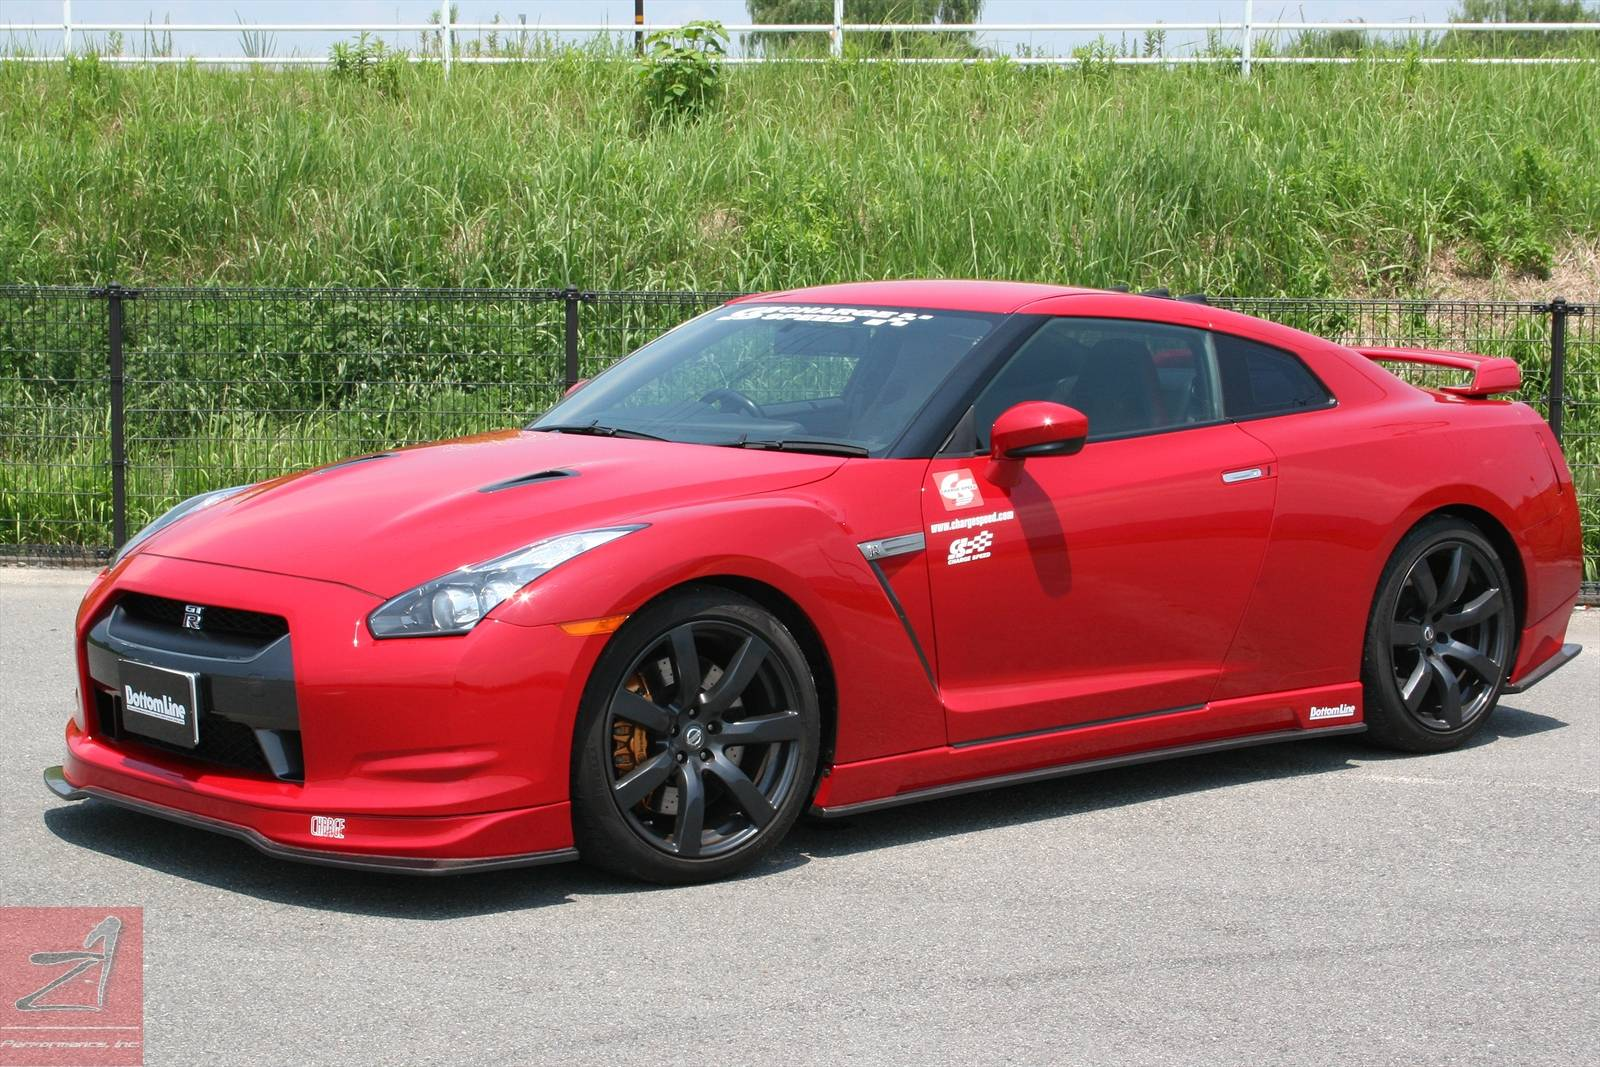 nissan gt-r aerodynamic kitchargespeed japan - gtspirit